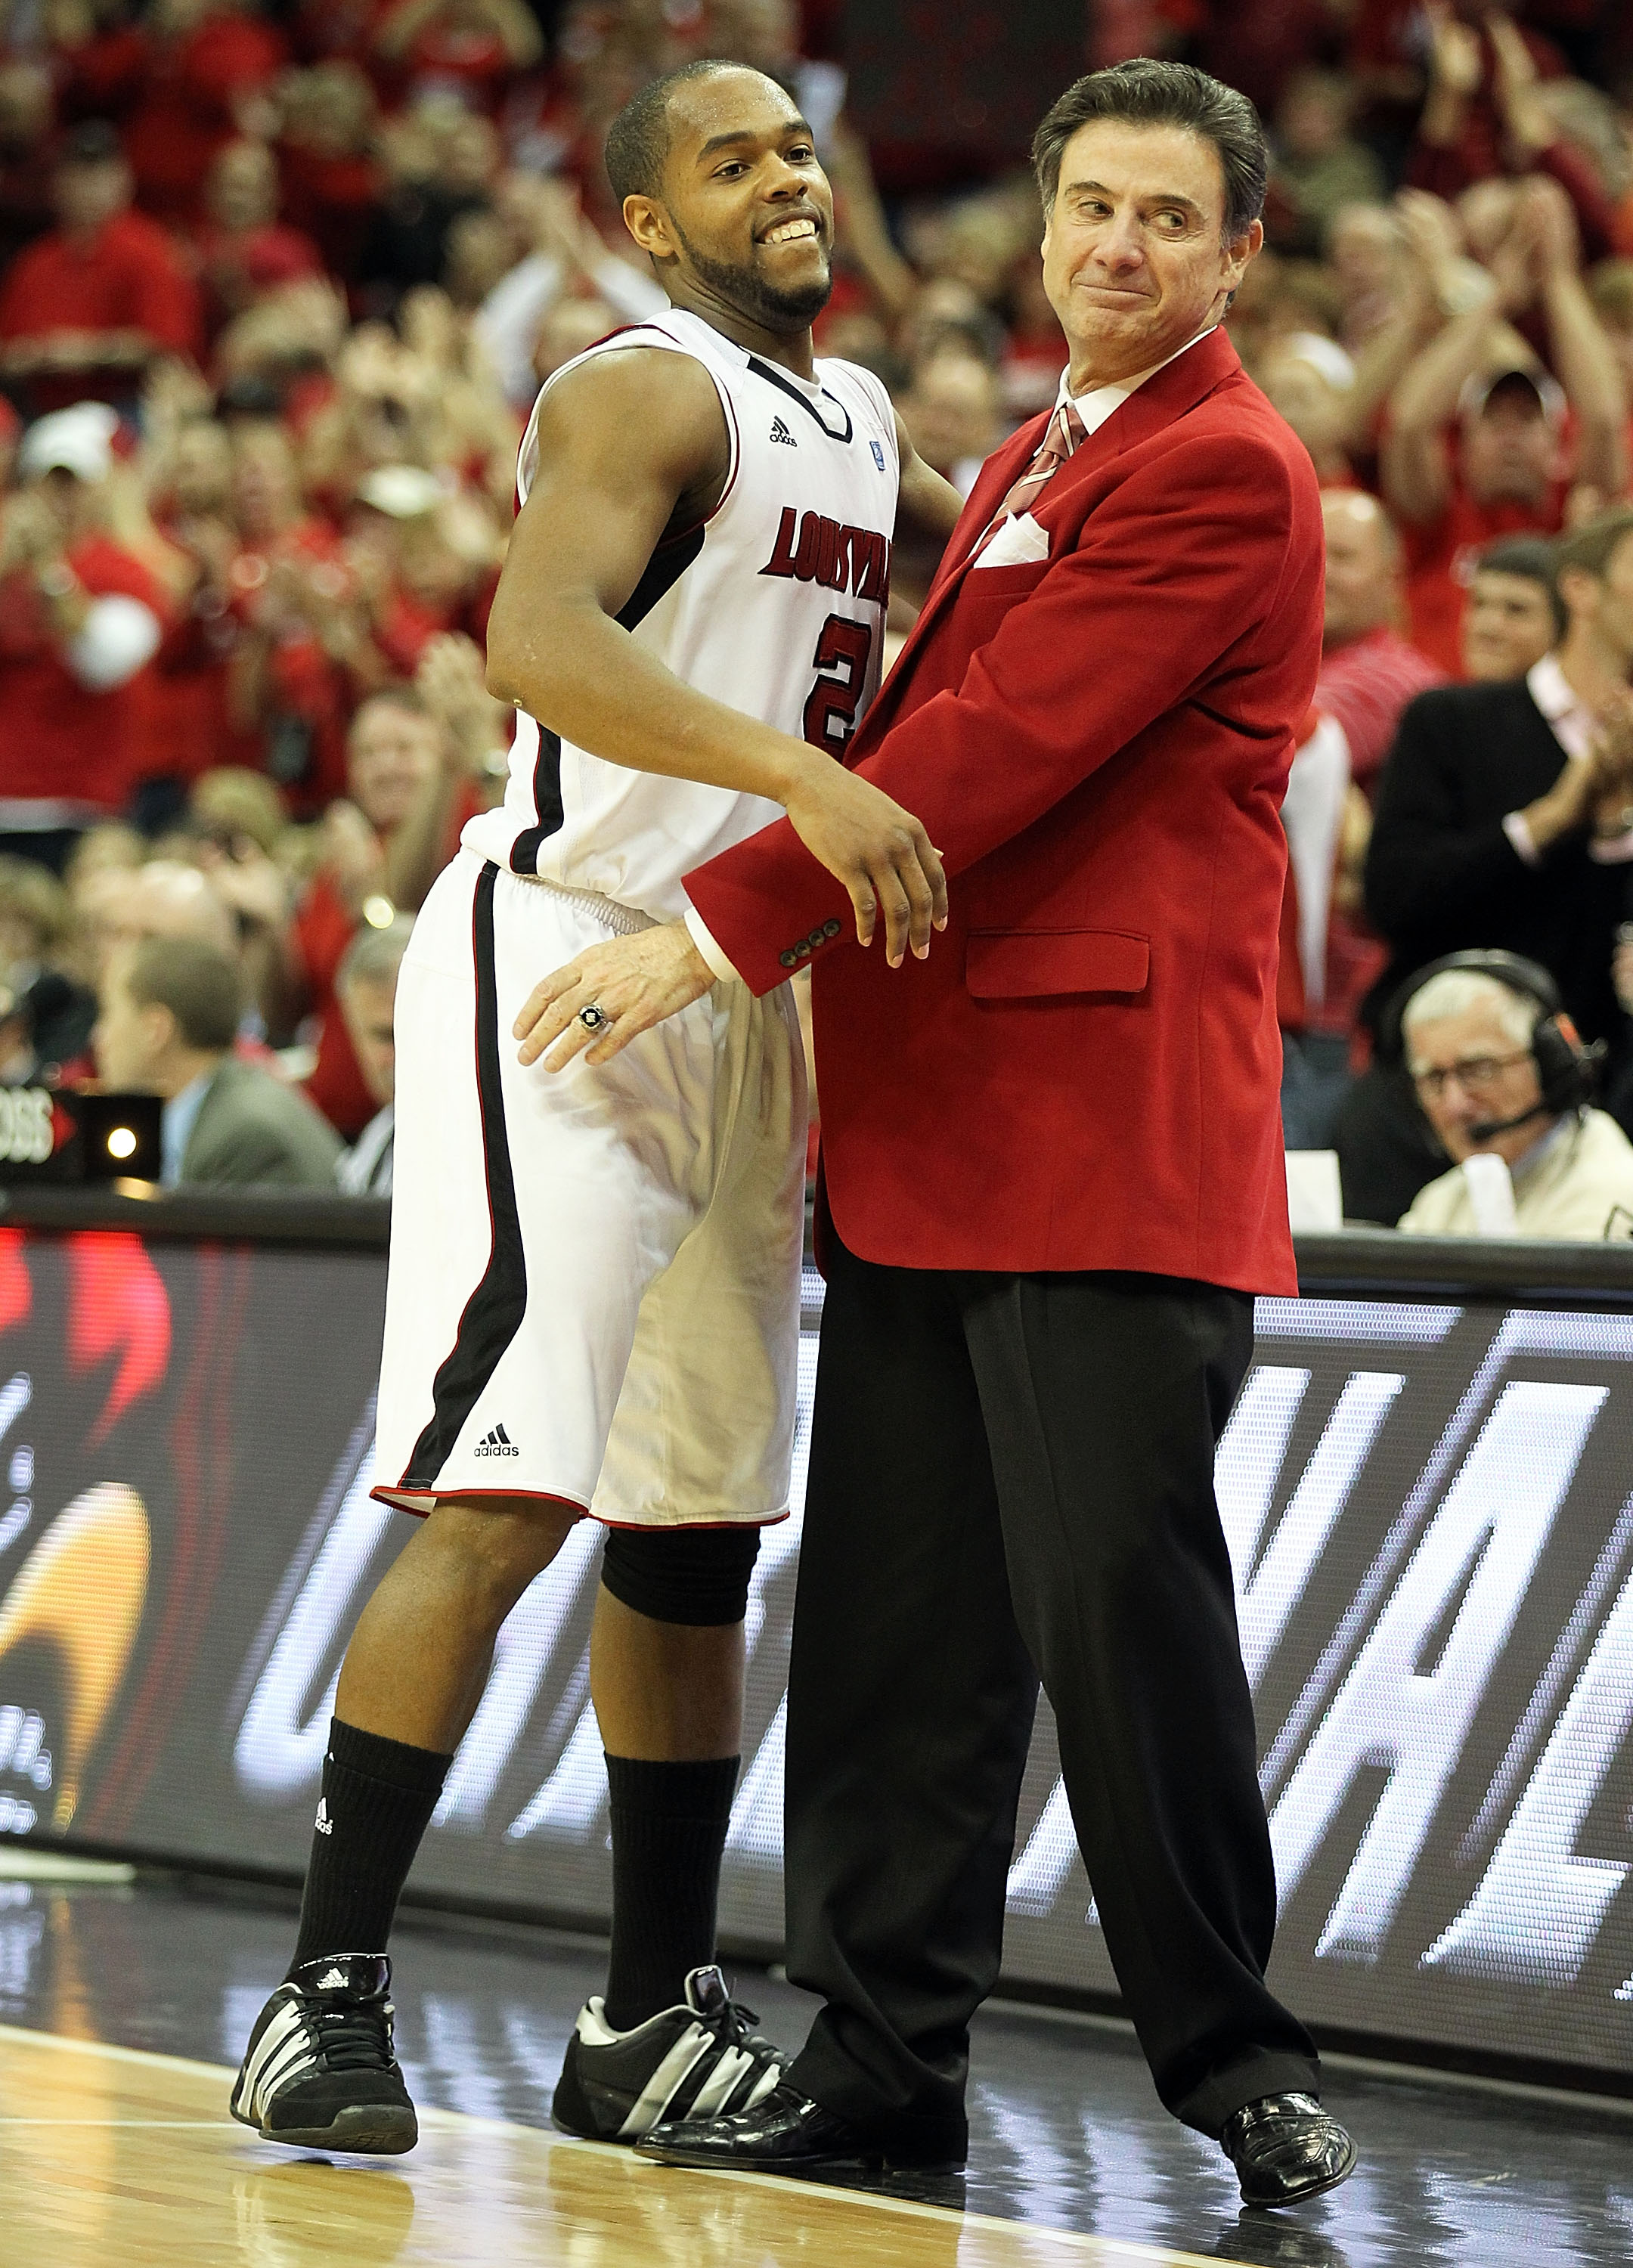 LOUISVILLE, KY - MARCH 02:  Rick Pitino the Head Coach of the Louisville Cardinals hugs Preston Knowles #2 in the final minute of the game during the Big East Conference game against the Providence Friars at the KFC Yum! Center on March 2, 2011 in Louisvi